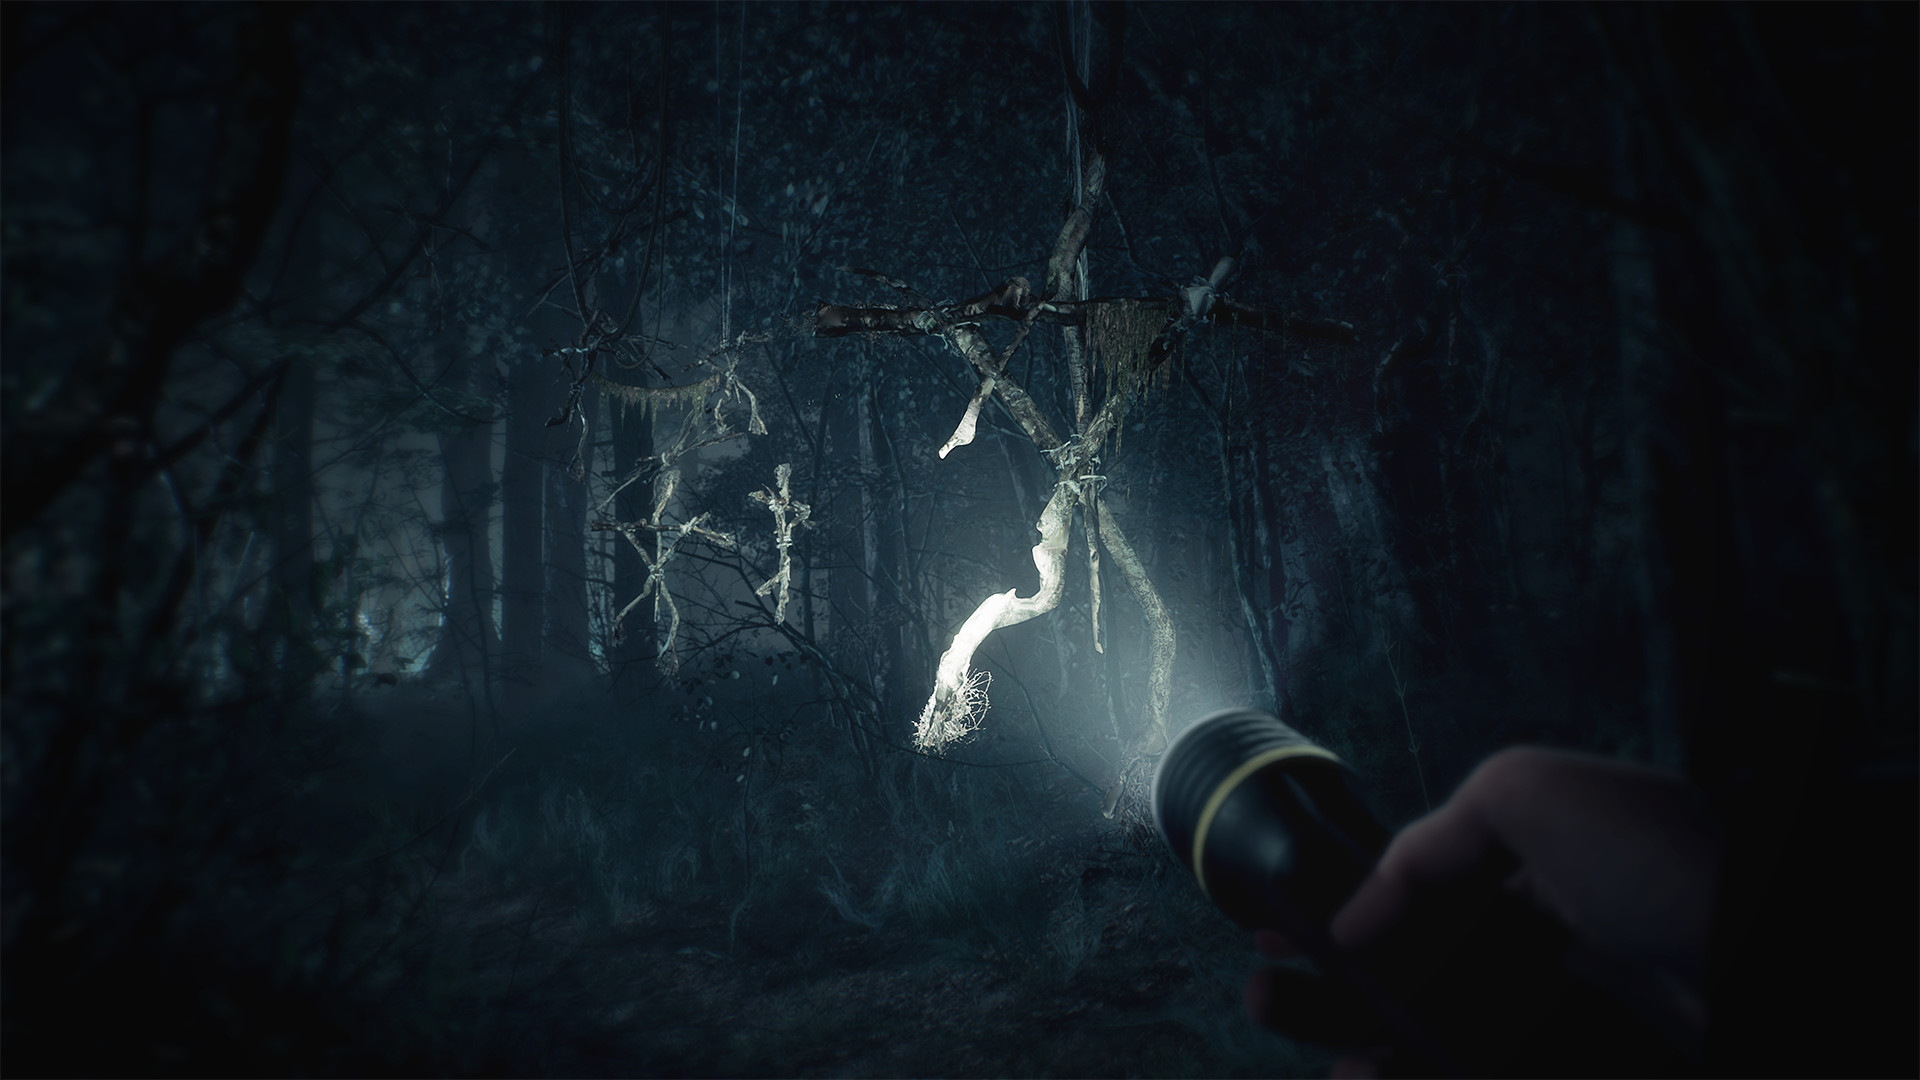 Blair Witch, puzzle games, survival horror, new games, latest games